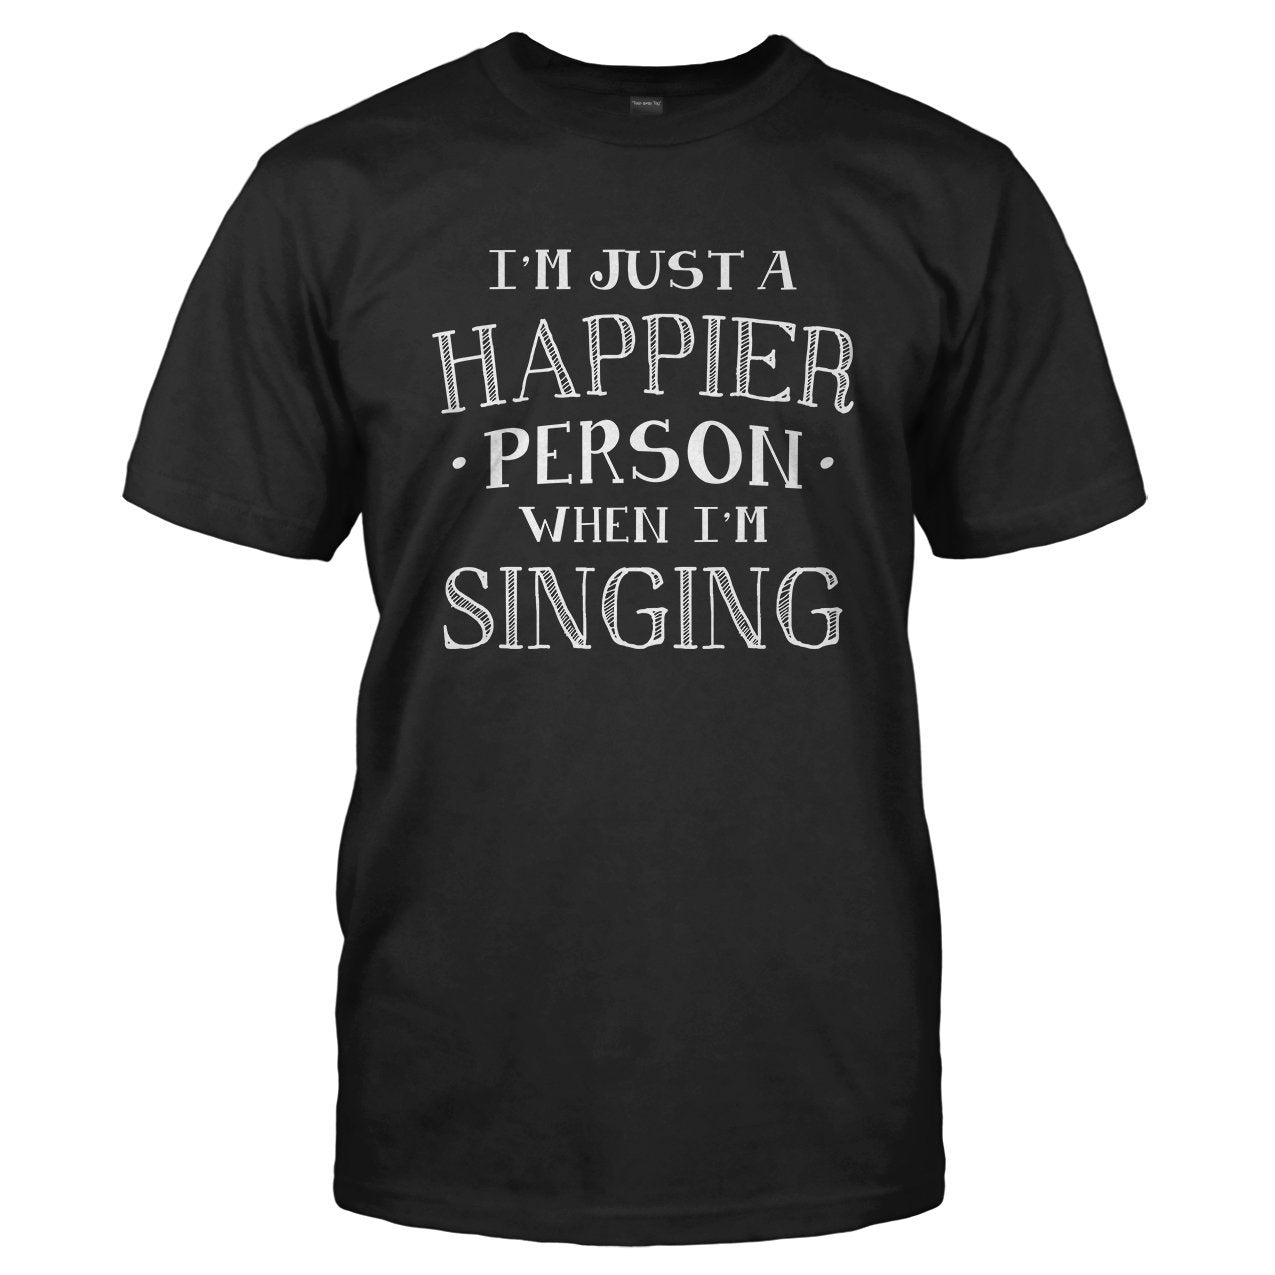 I'm Just a Happier Person When I'm Singing - T Shirt